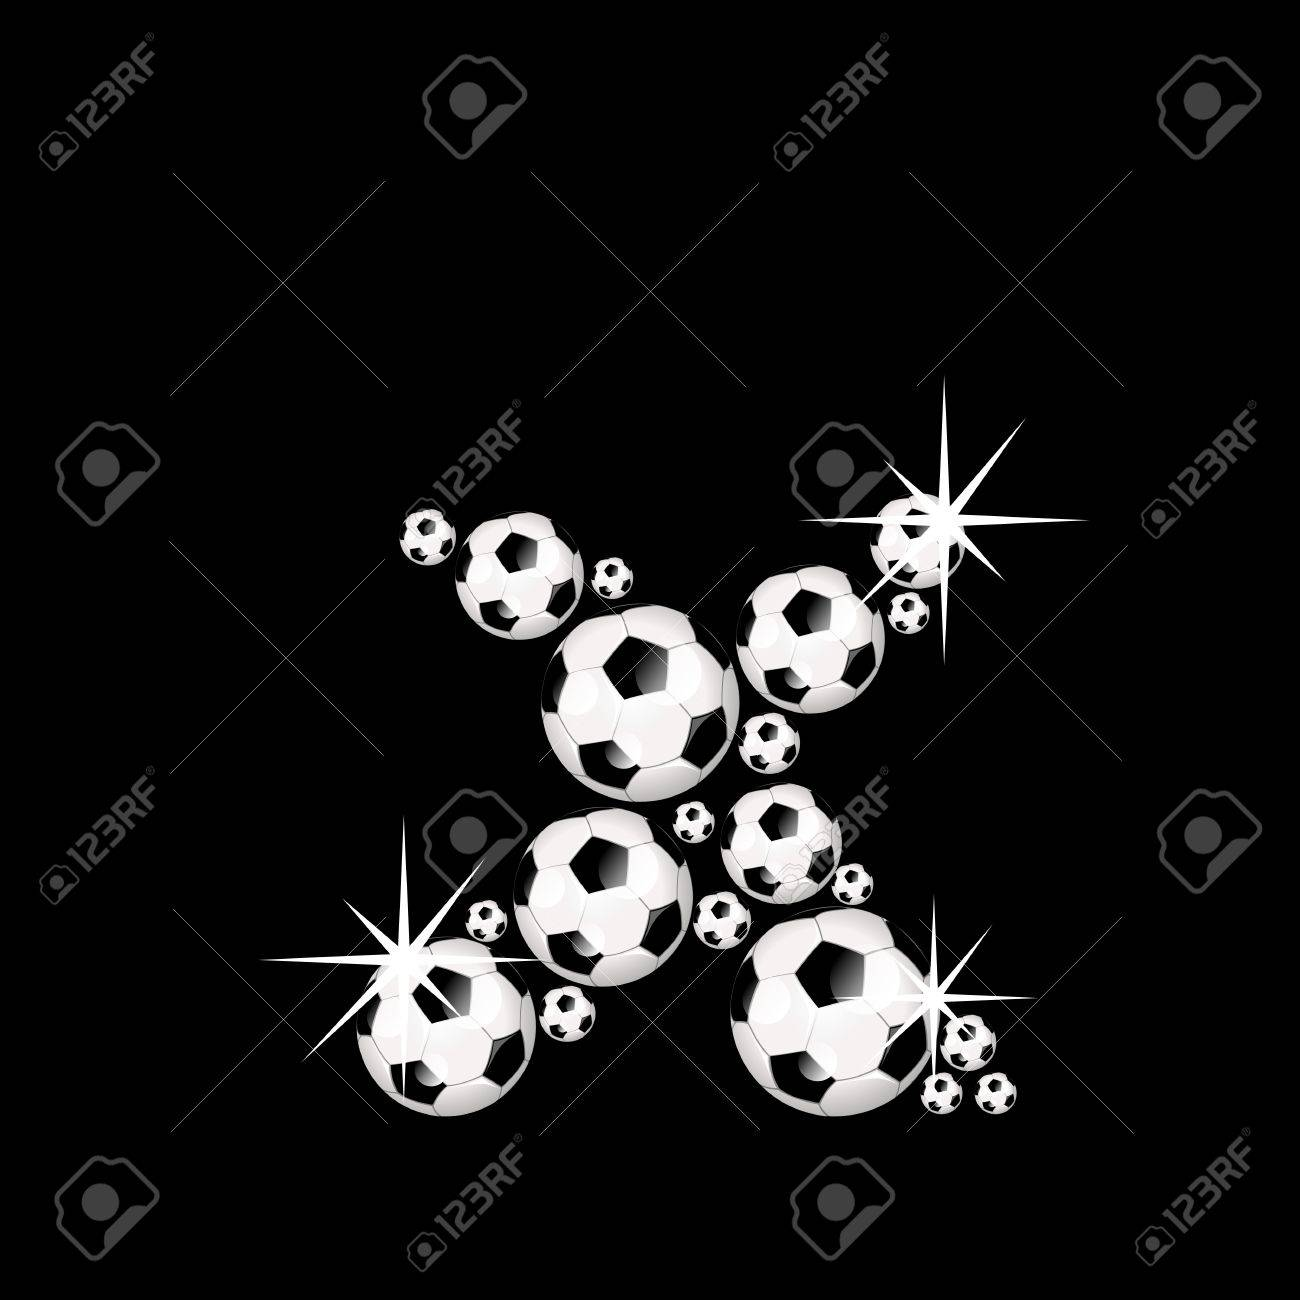 Soccer Or Football Alphabet Letter X Illustration Icon With Shiny